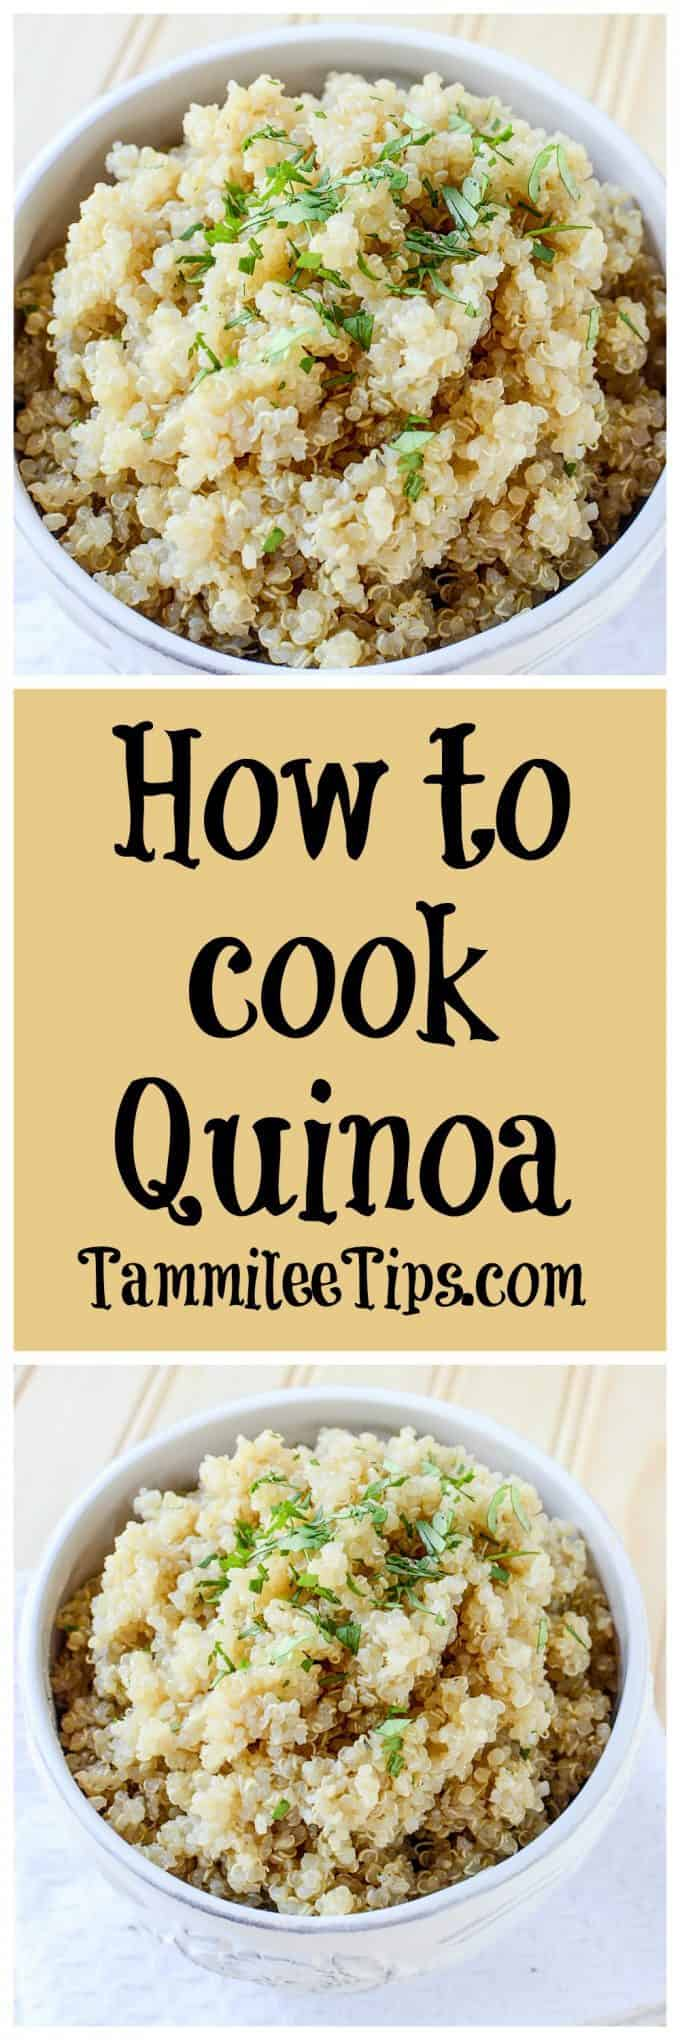 How to cook Quinoa in a Crock Pot! Let the slow cooker do all the work for you! You end up with a great side dish that is perfect for salads or any recipe. Easily adapted to use chicken stock or any other stock depending on your preference. Can be vegetarian or vegan!